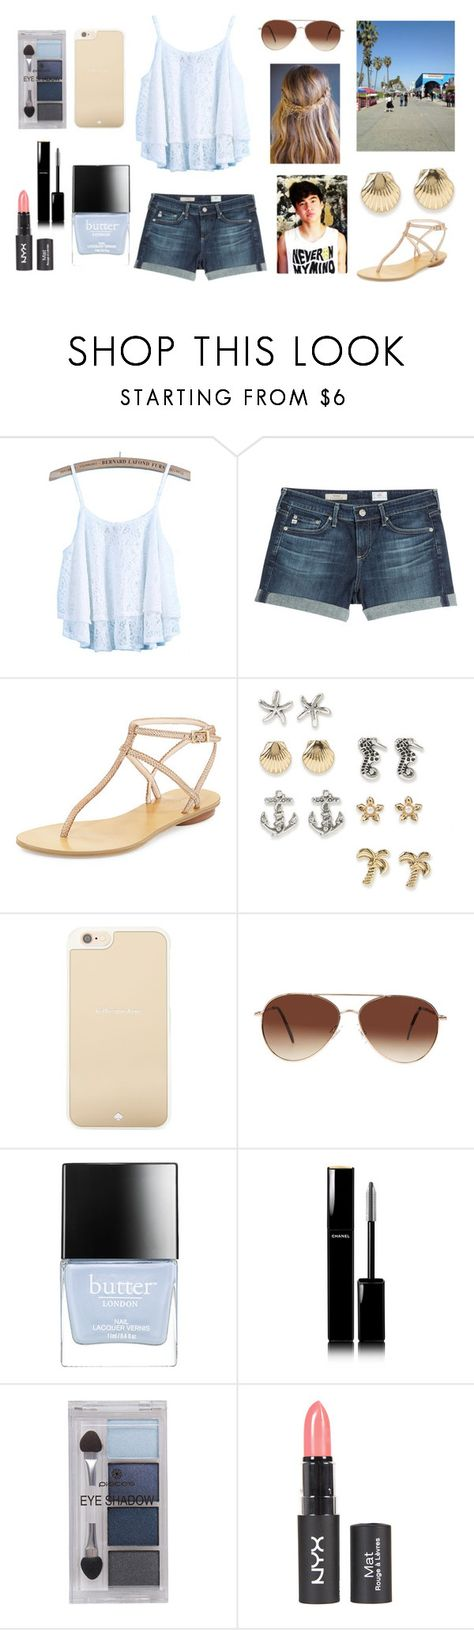 """""""LA Boardwalk with Calum"""" by sarahorantomlinson ❤ liked on Polyvore featuring AG Adriano Goldschmied, Pelle Moda, Aéropostale, Kate Spade, Eloquii, Butter London, Chanel and Pieces"""